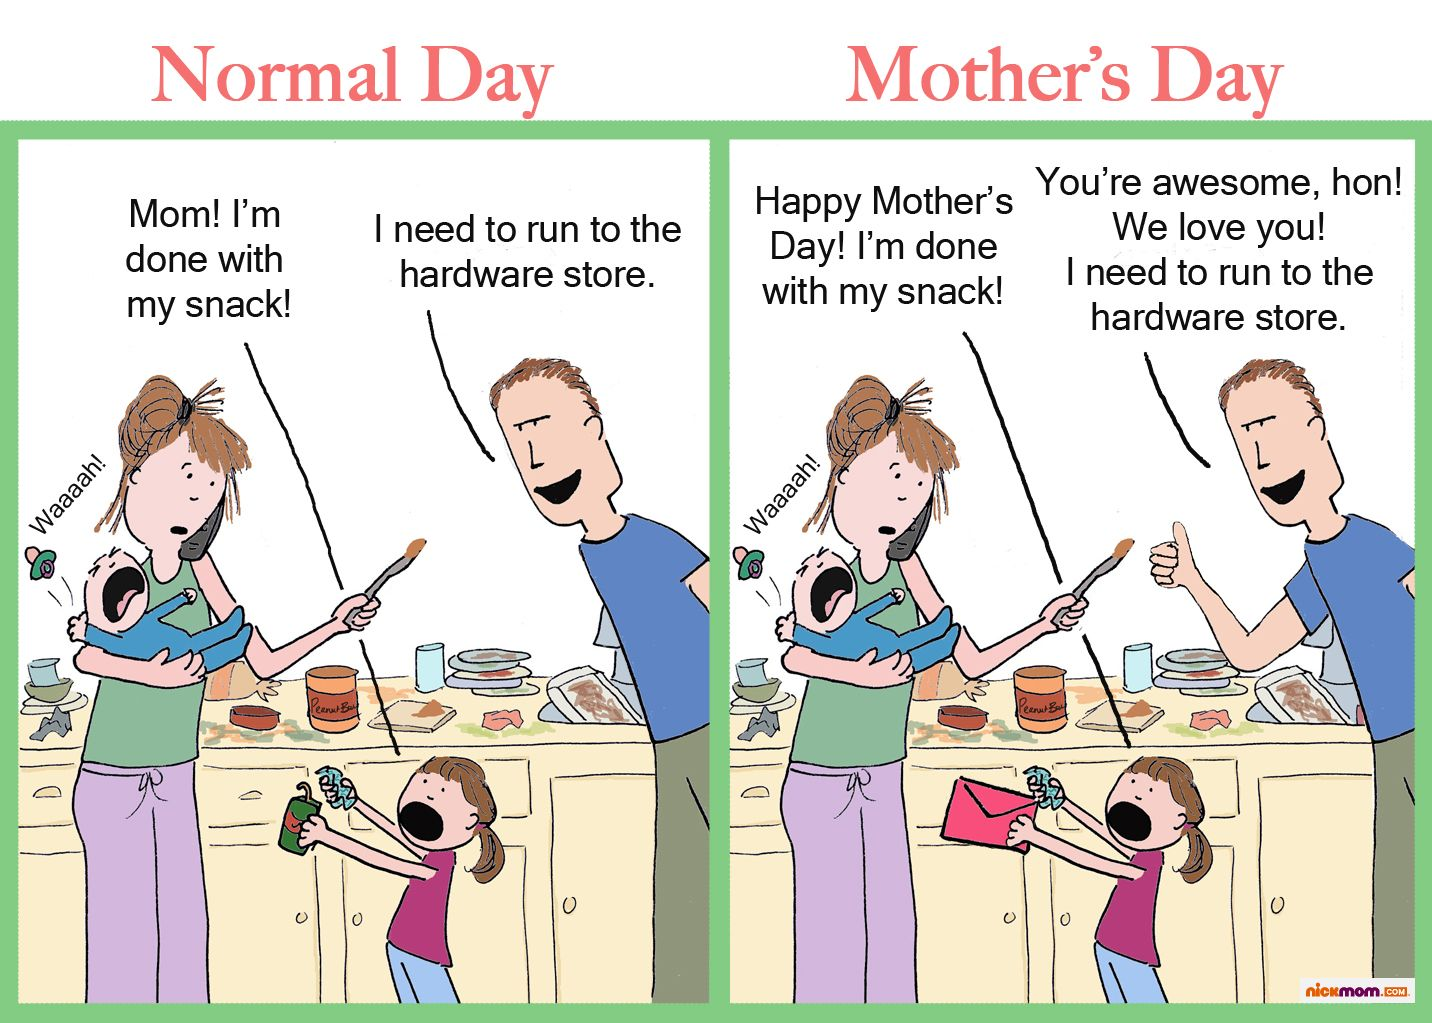 Funny Meme For Mothers Day : Normal day vs mother s things that make me laugh